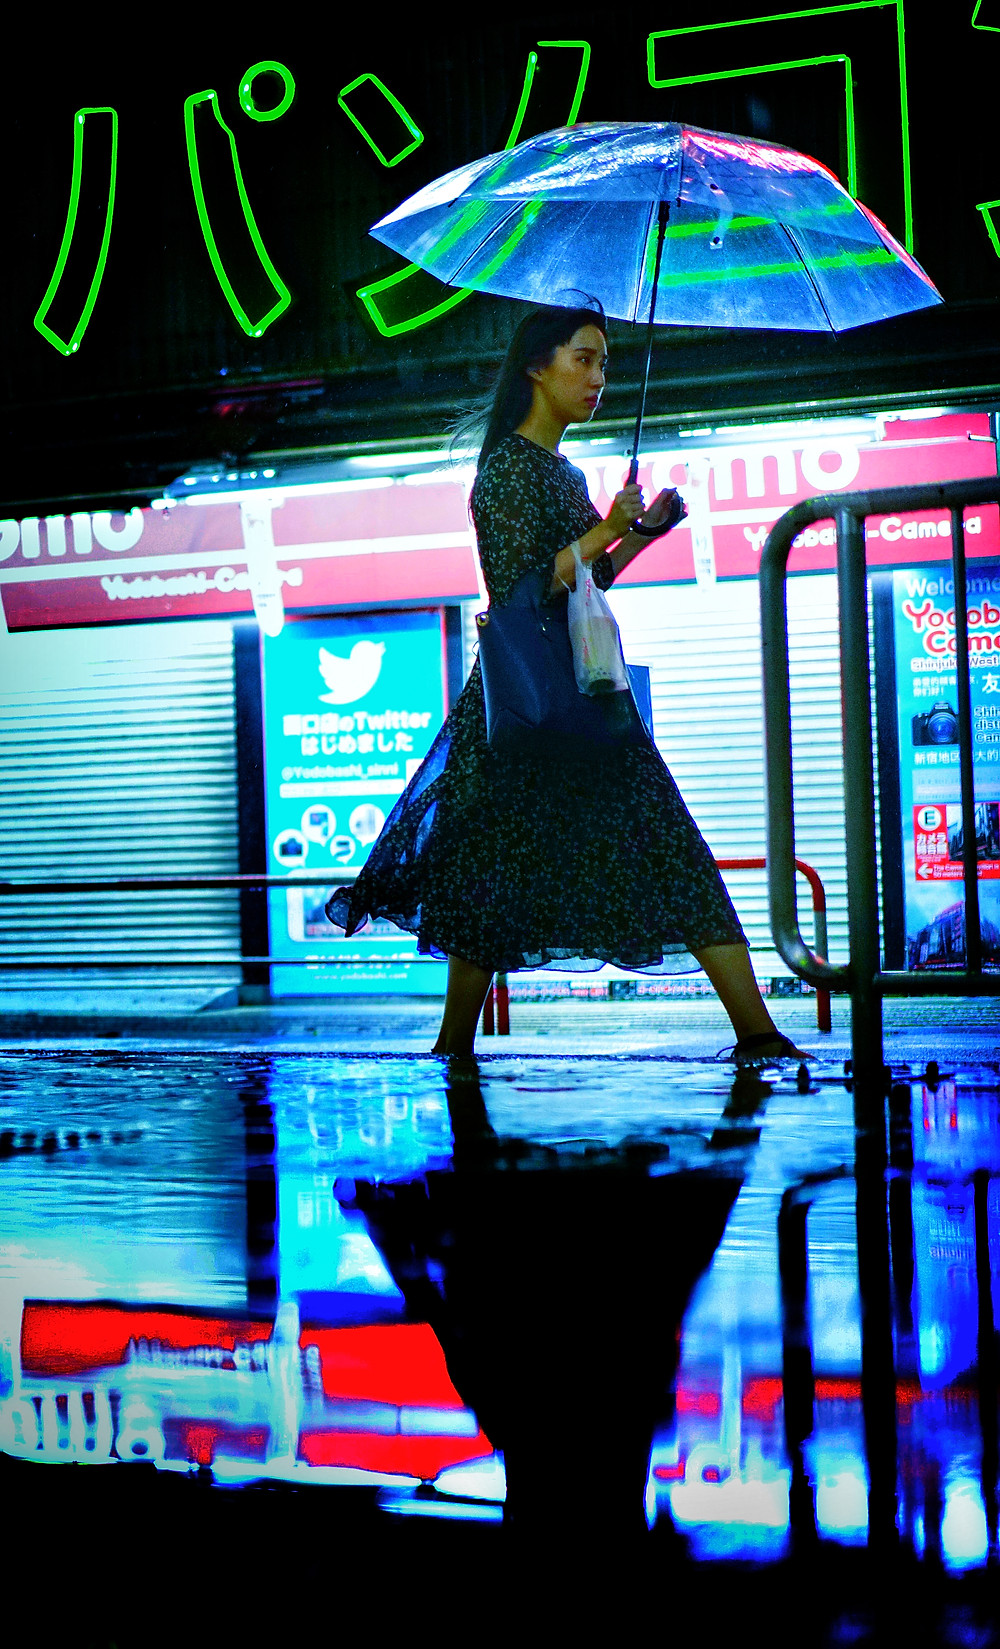 This photo was shot in Shinjuku, Tokyo during a typhoon.  In the photo a woman walks past some green neon holding an umbrella.